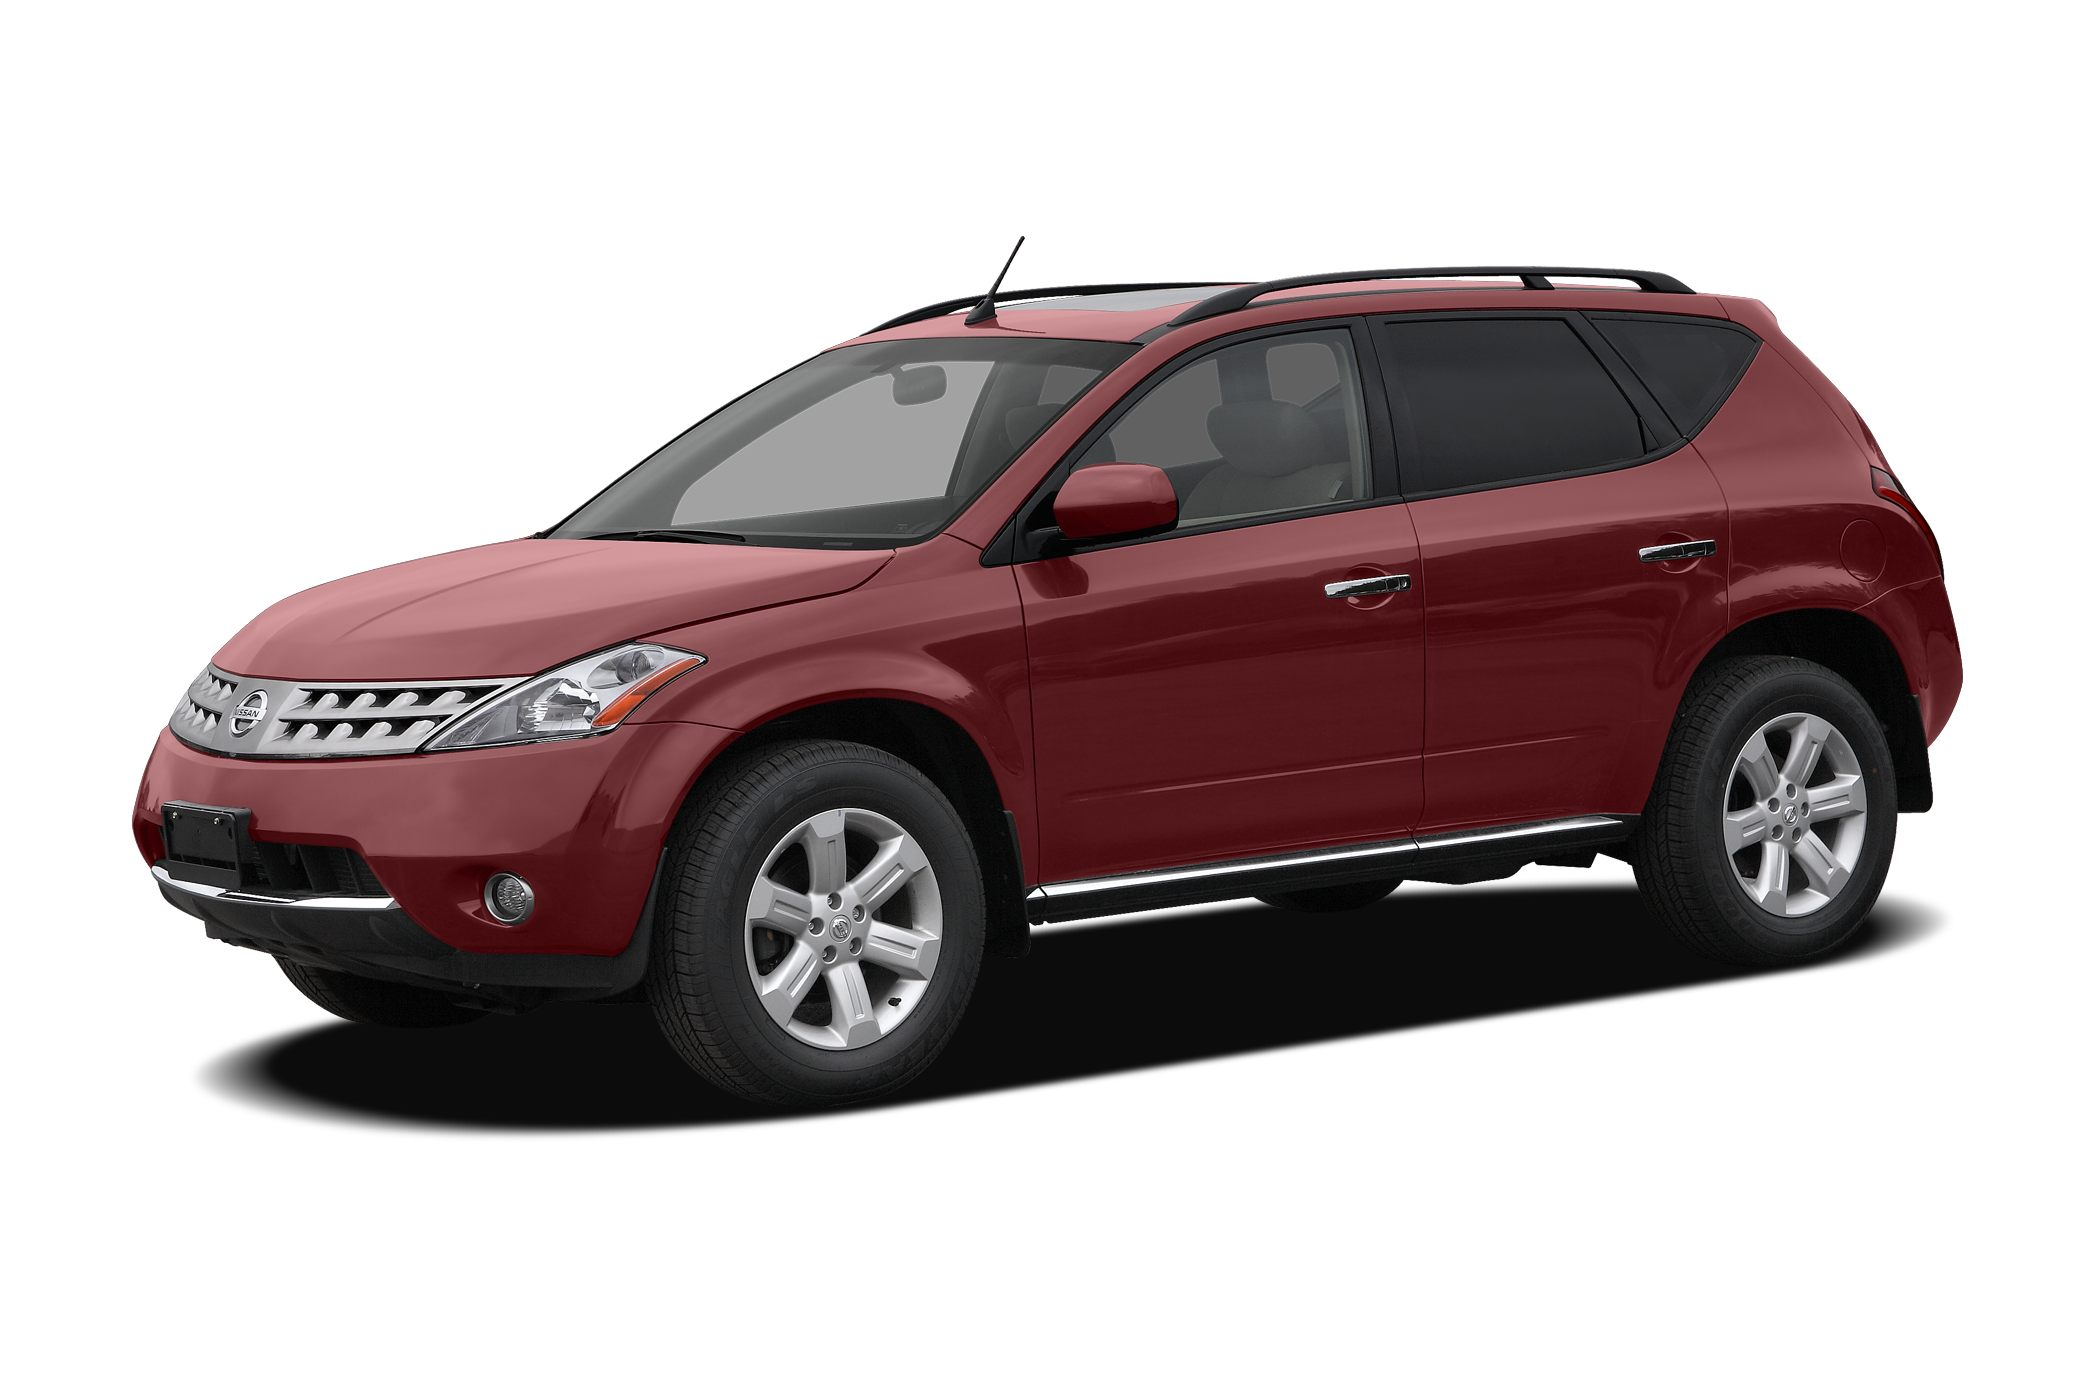 2006 Nissan Murano Styles Amp Features Highlights